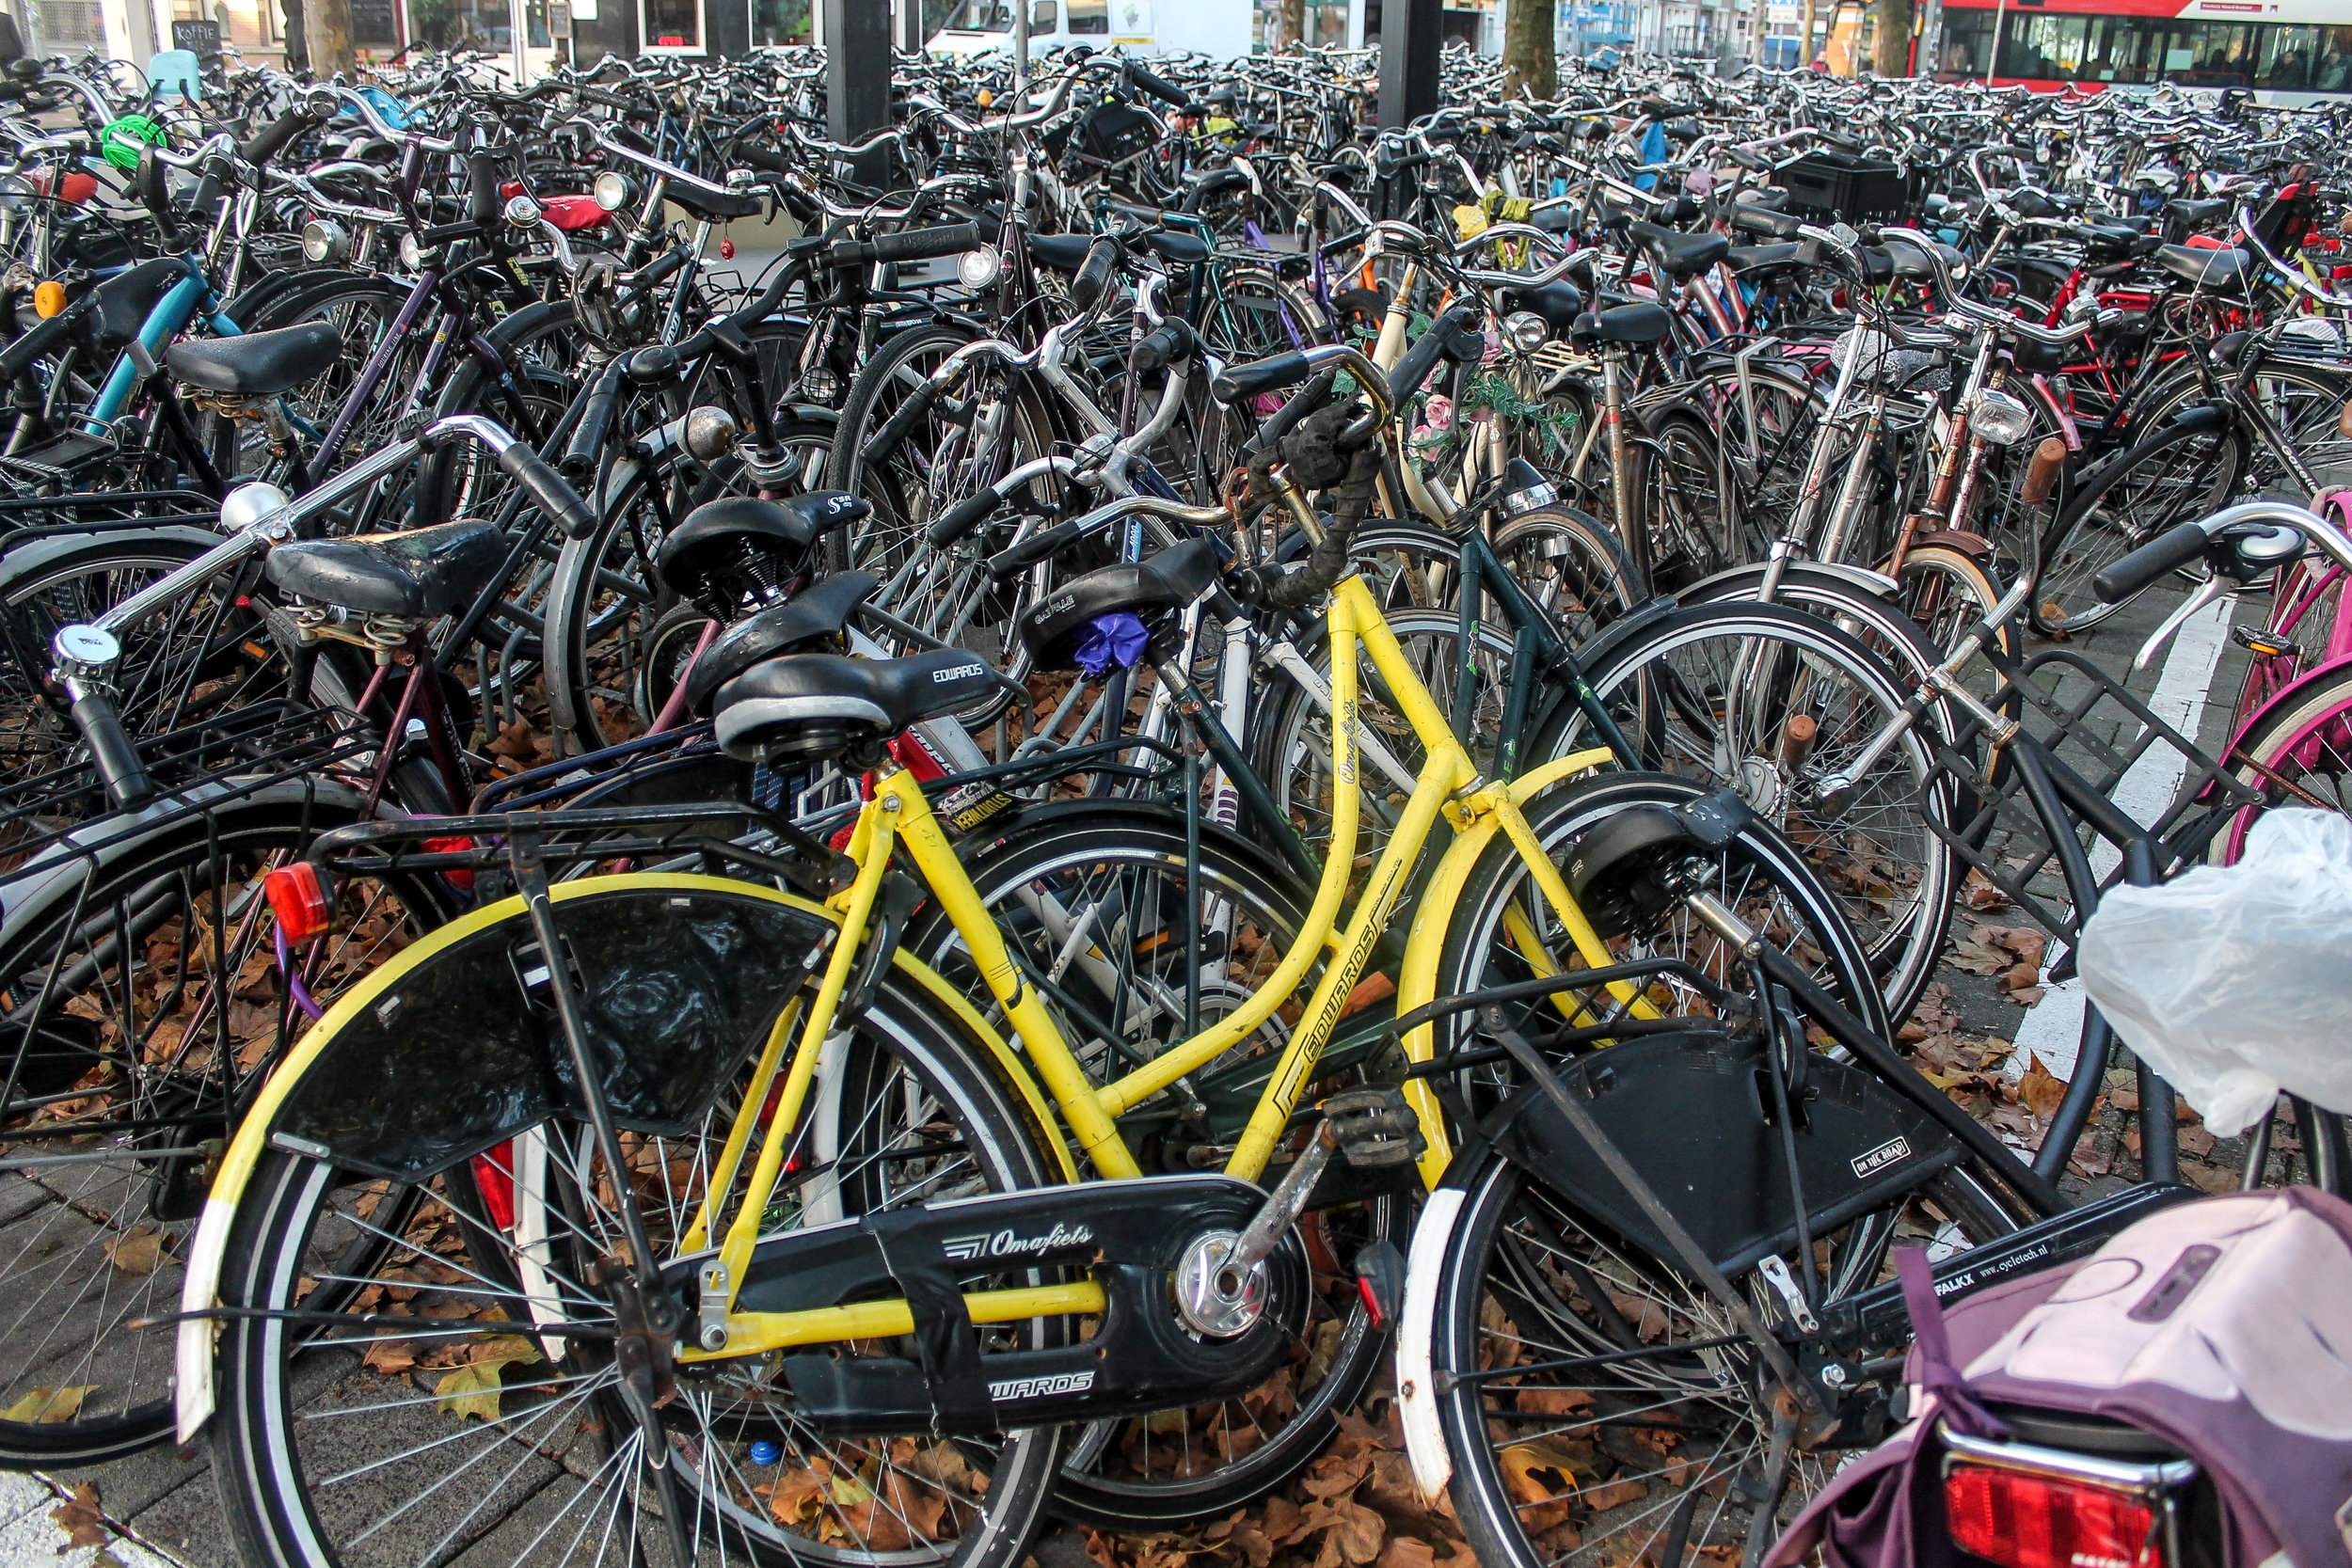 Bicycles in The Netherlands.